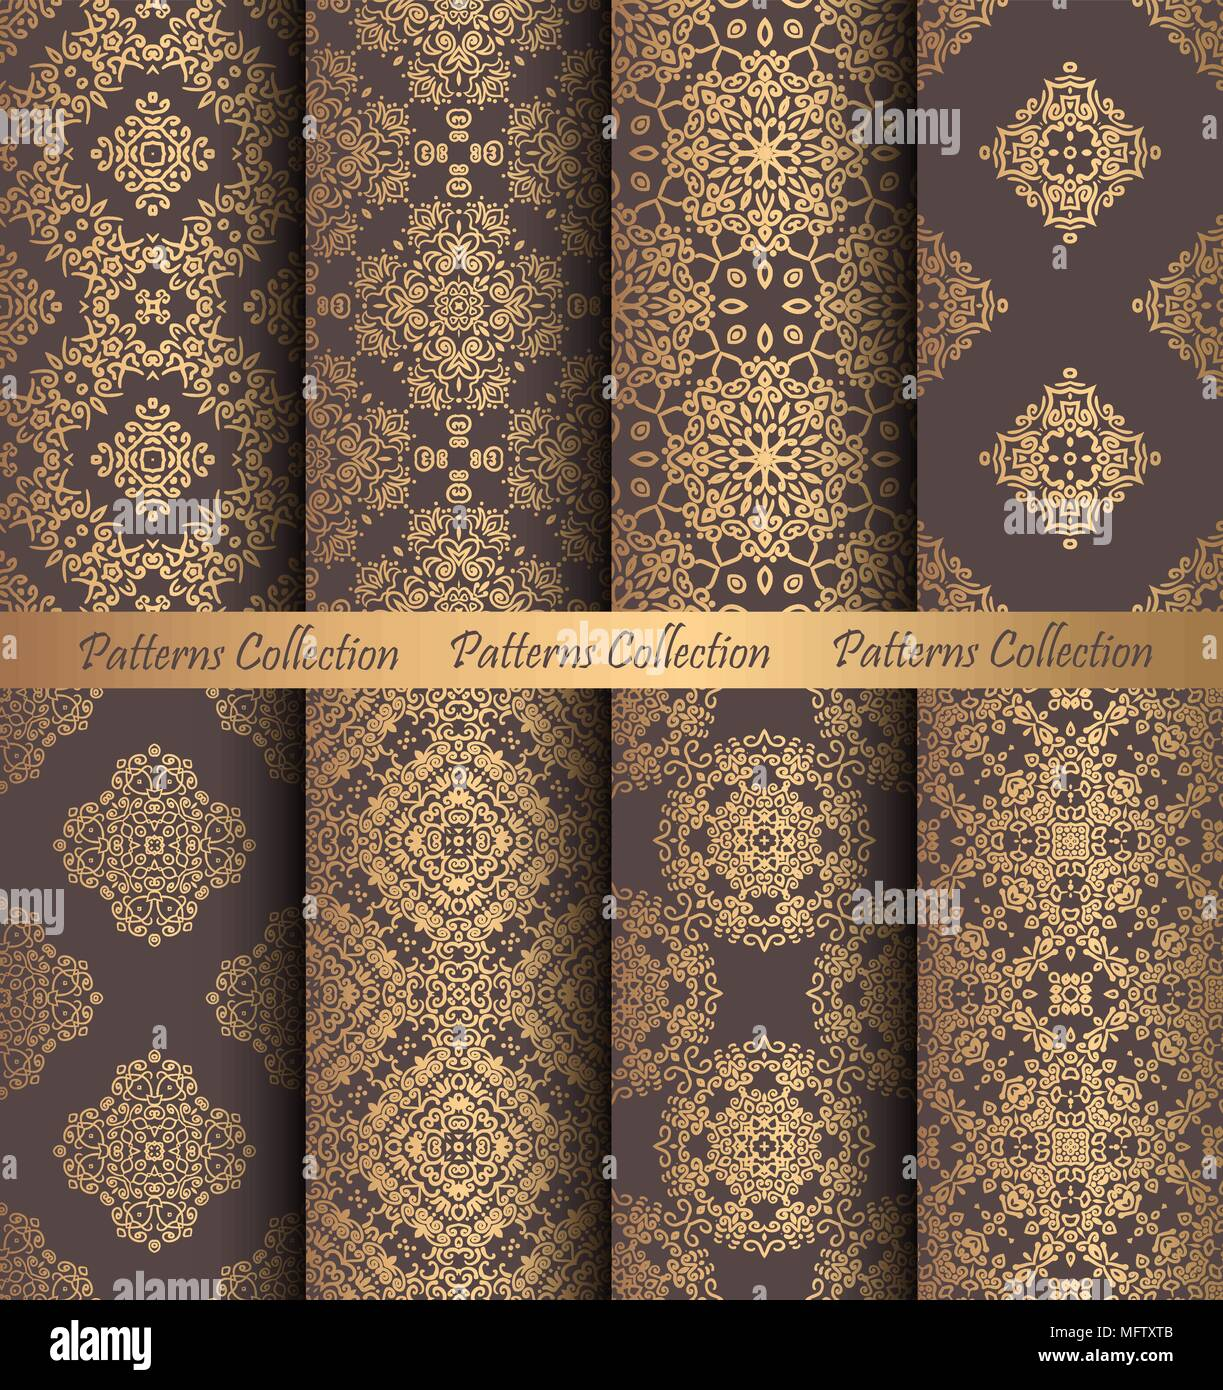 Luxury Seamless Patterns Collection Golden Vintage Design Elements Elegant Weave Ornament For Wallpaper Fabric Paper Invitation Print Stylized D